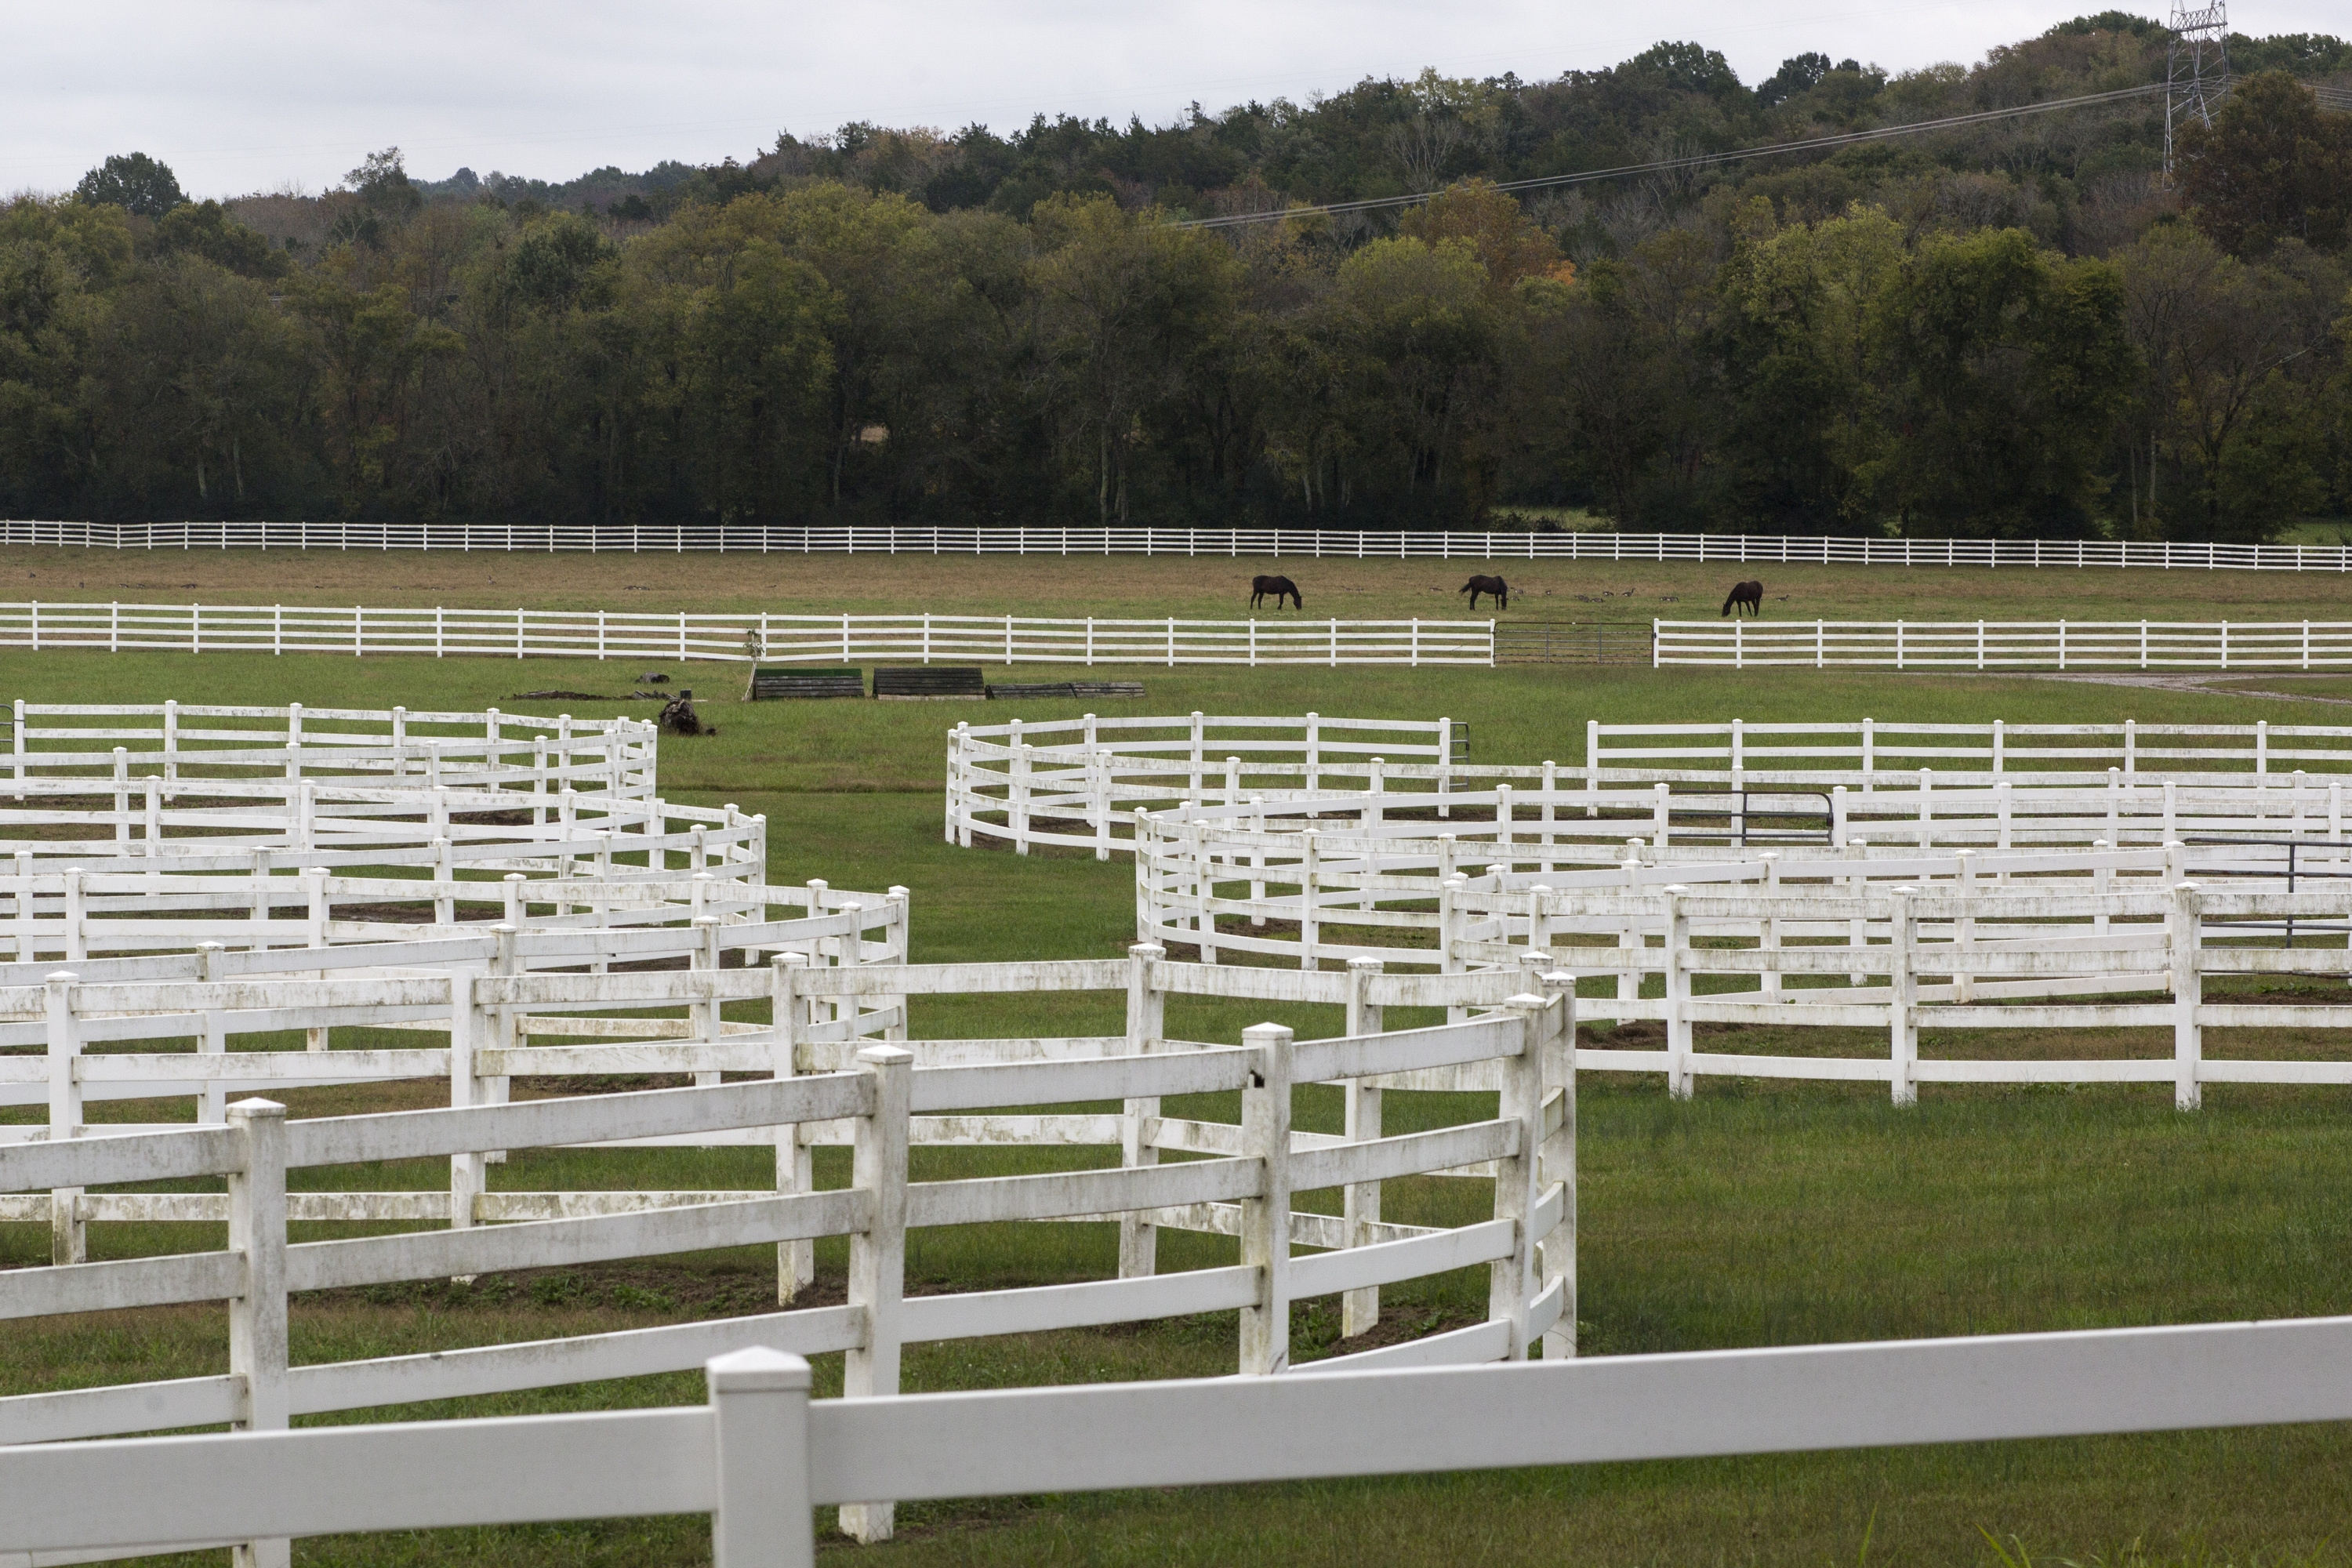 Horses graze in LeiperþÄôs Fork, Tenn., a 15-minute drive from downtown Franklin, Oct. 12, 2014.  Some call Franklin a suburb of Music City þÄî and plenty of farmland has been developed into subdivisions, strip malls and office plazas þÄî but it is a world away, with a history and culture all its own. (Joe Buglewicz/The New York Times) -- PHOTO MOVED IN ADVANCE AND NOT FOR USE - ONLINE OR IN PRINT - BEFORE OCT. 26, 2014.